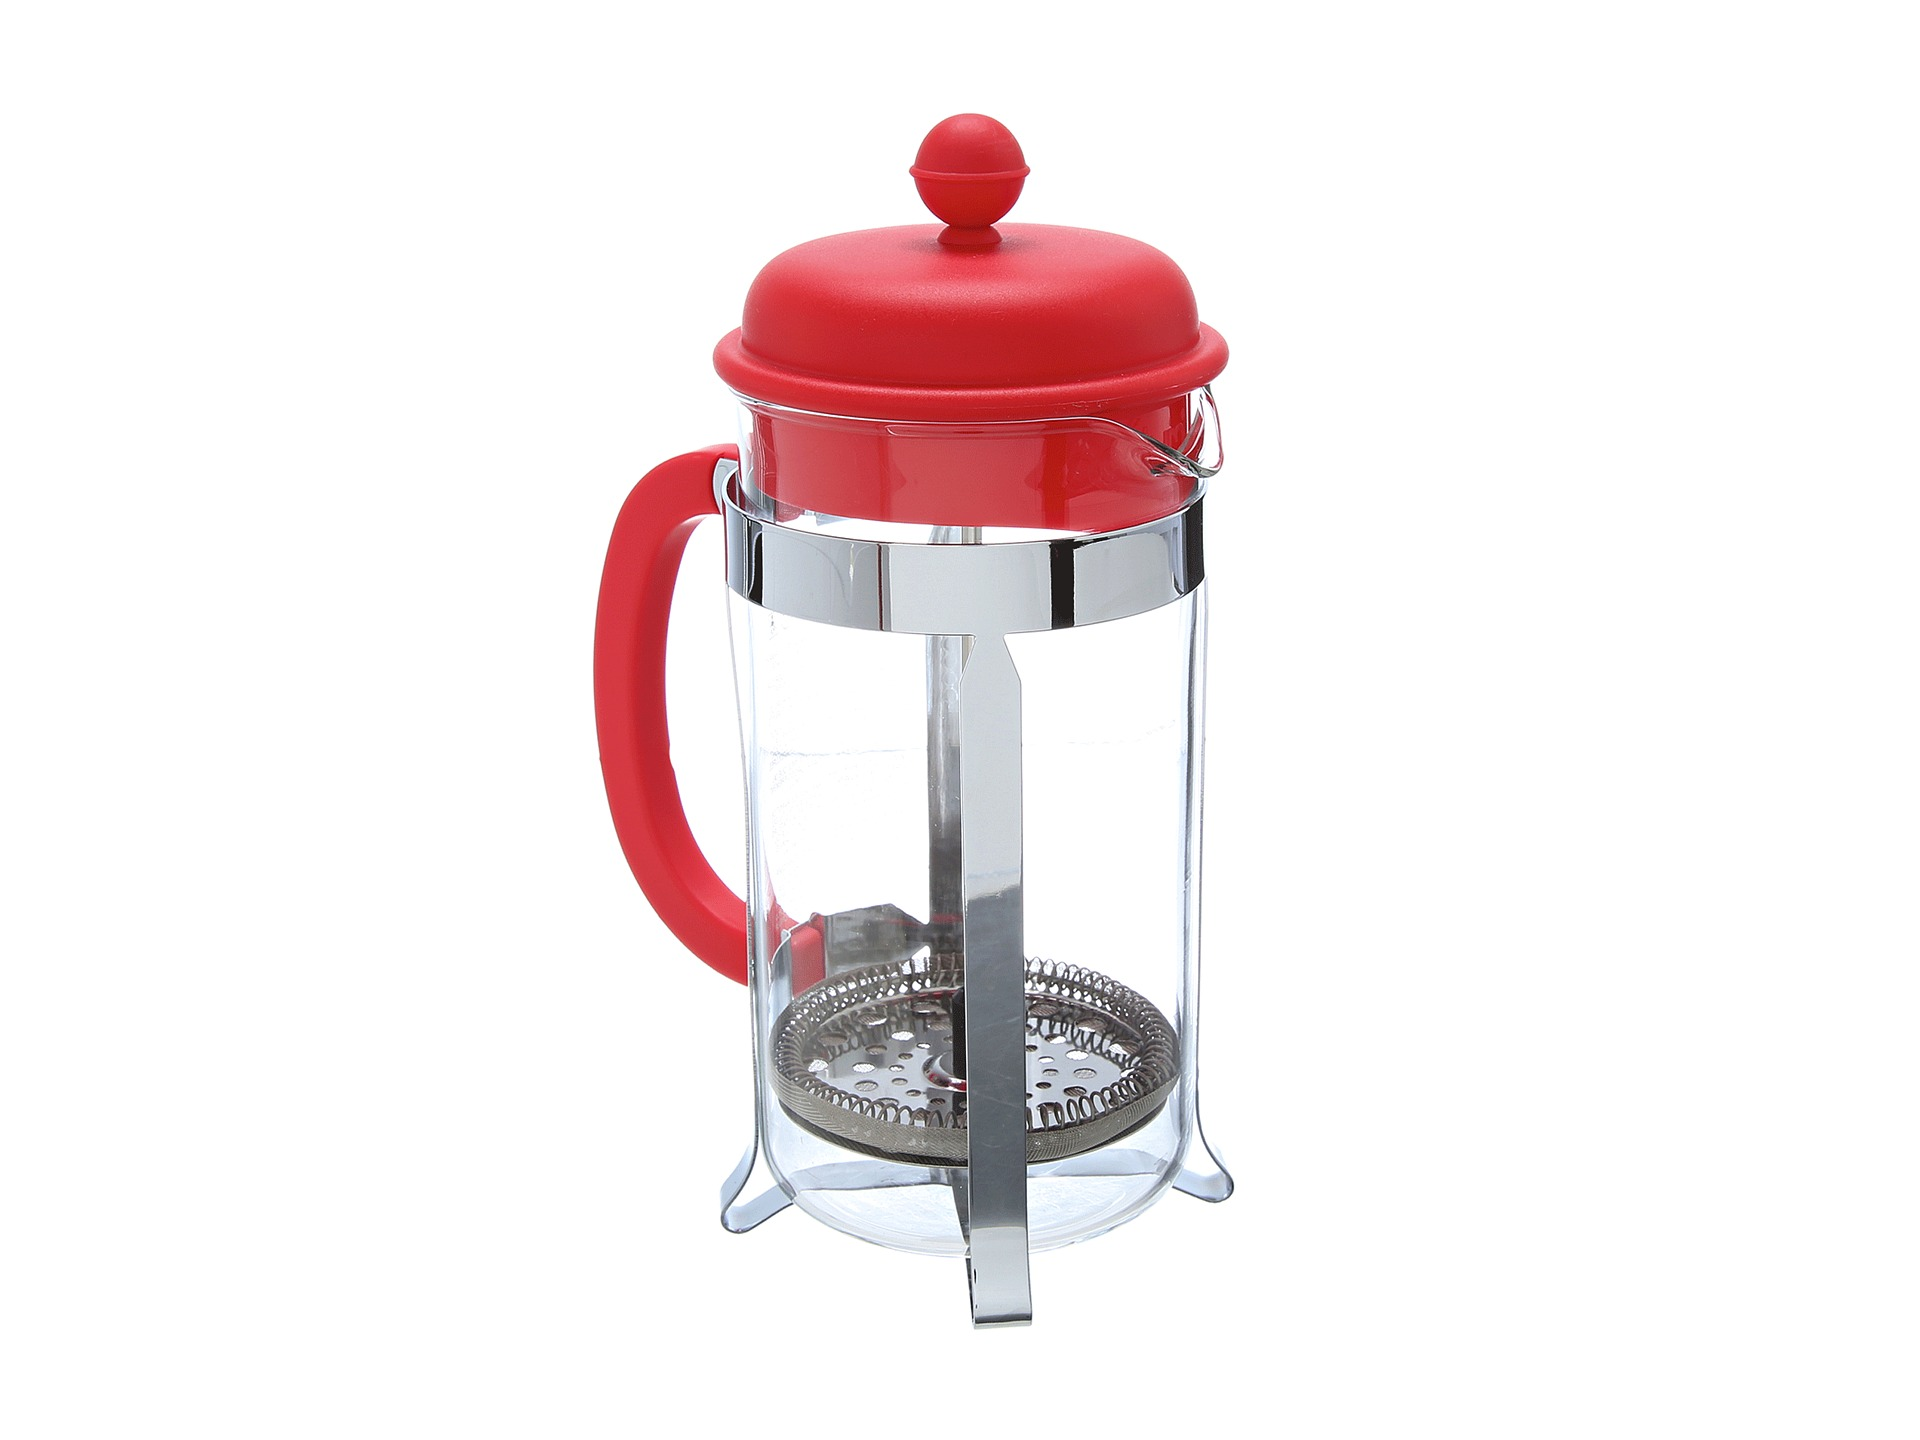 Bodum Caffettiera French Press Coffeemaker 34 Oz Shipped Free at Zappos